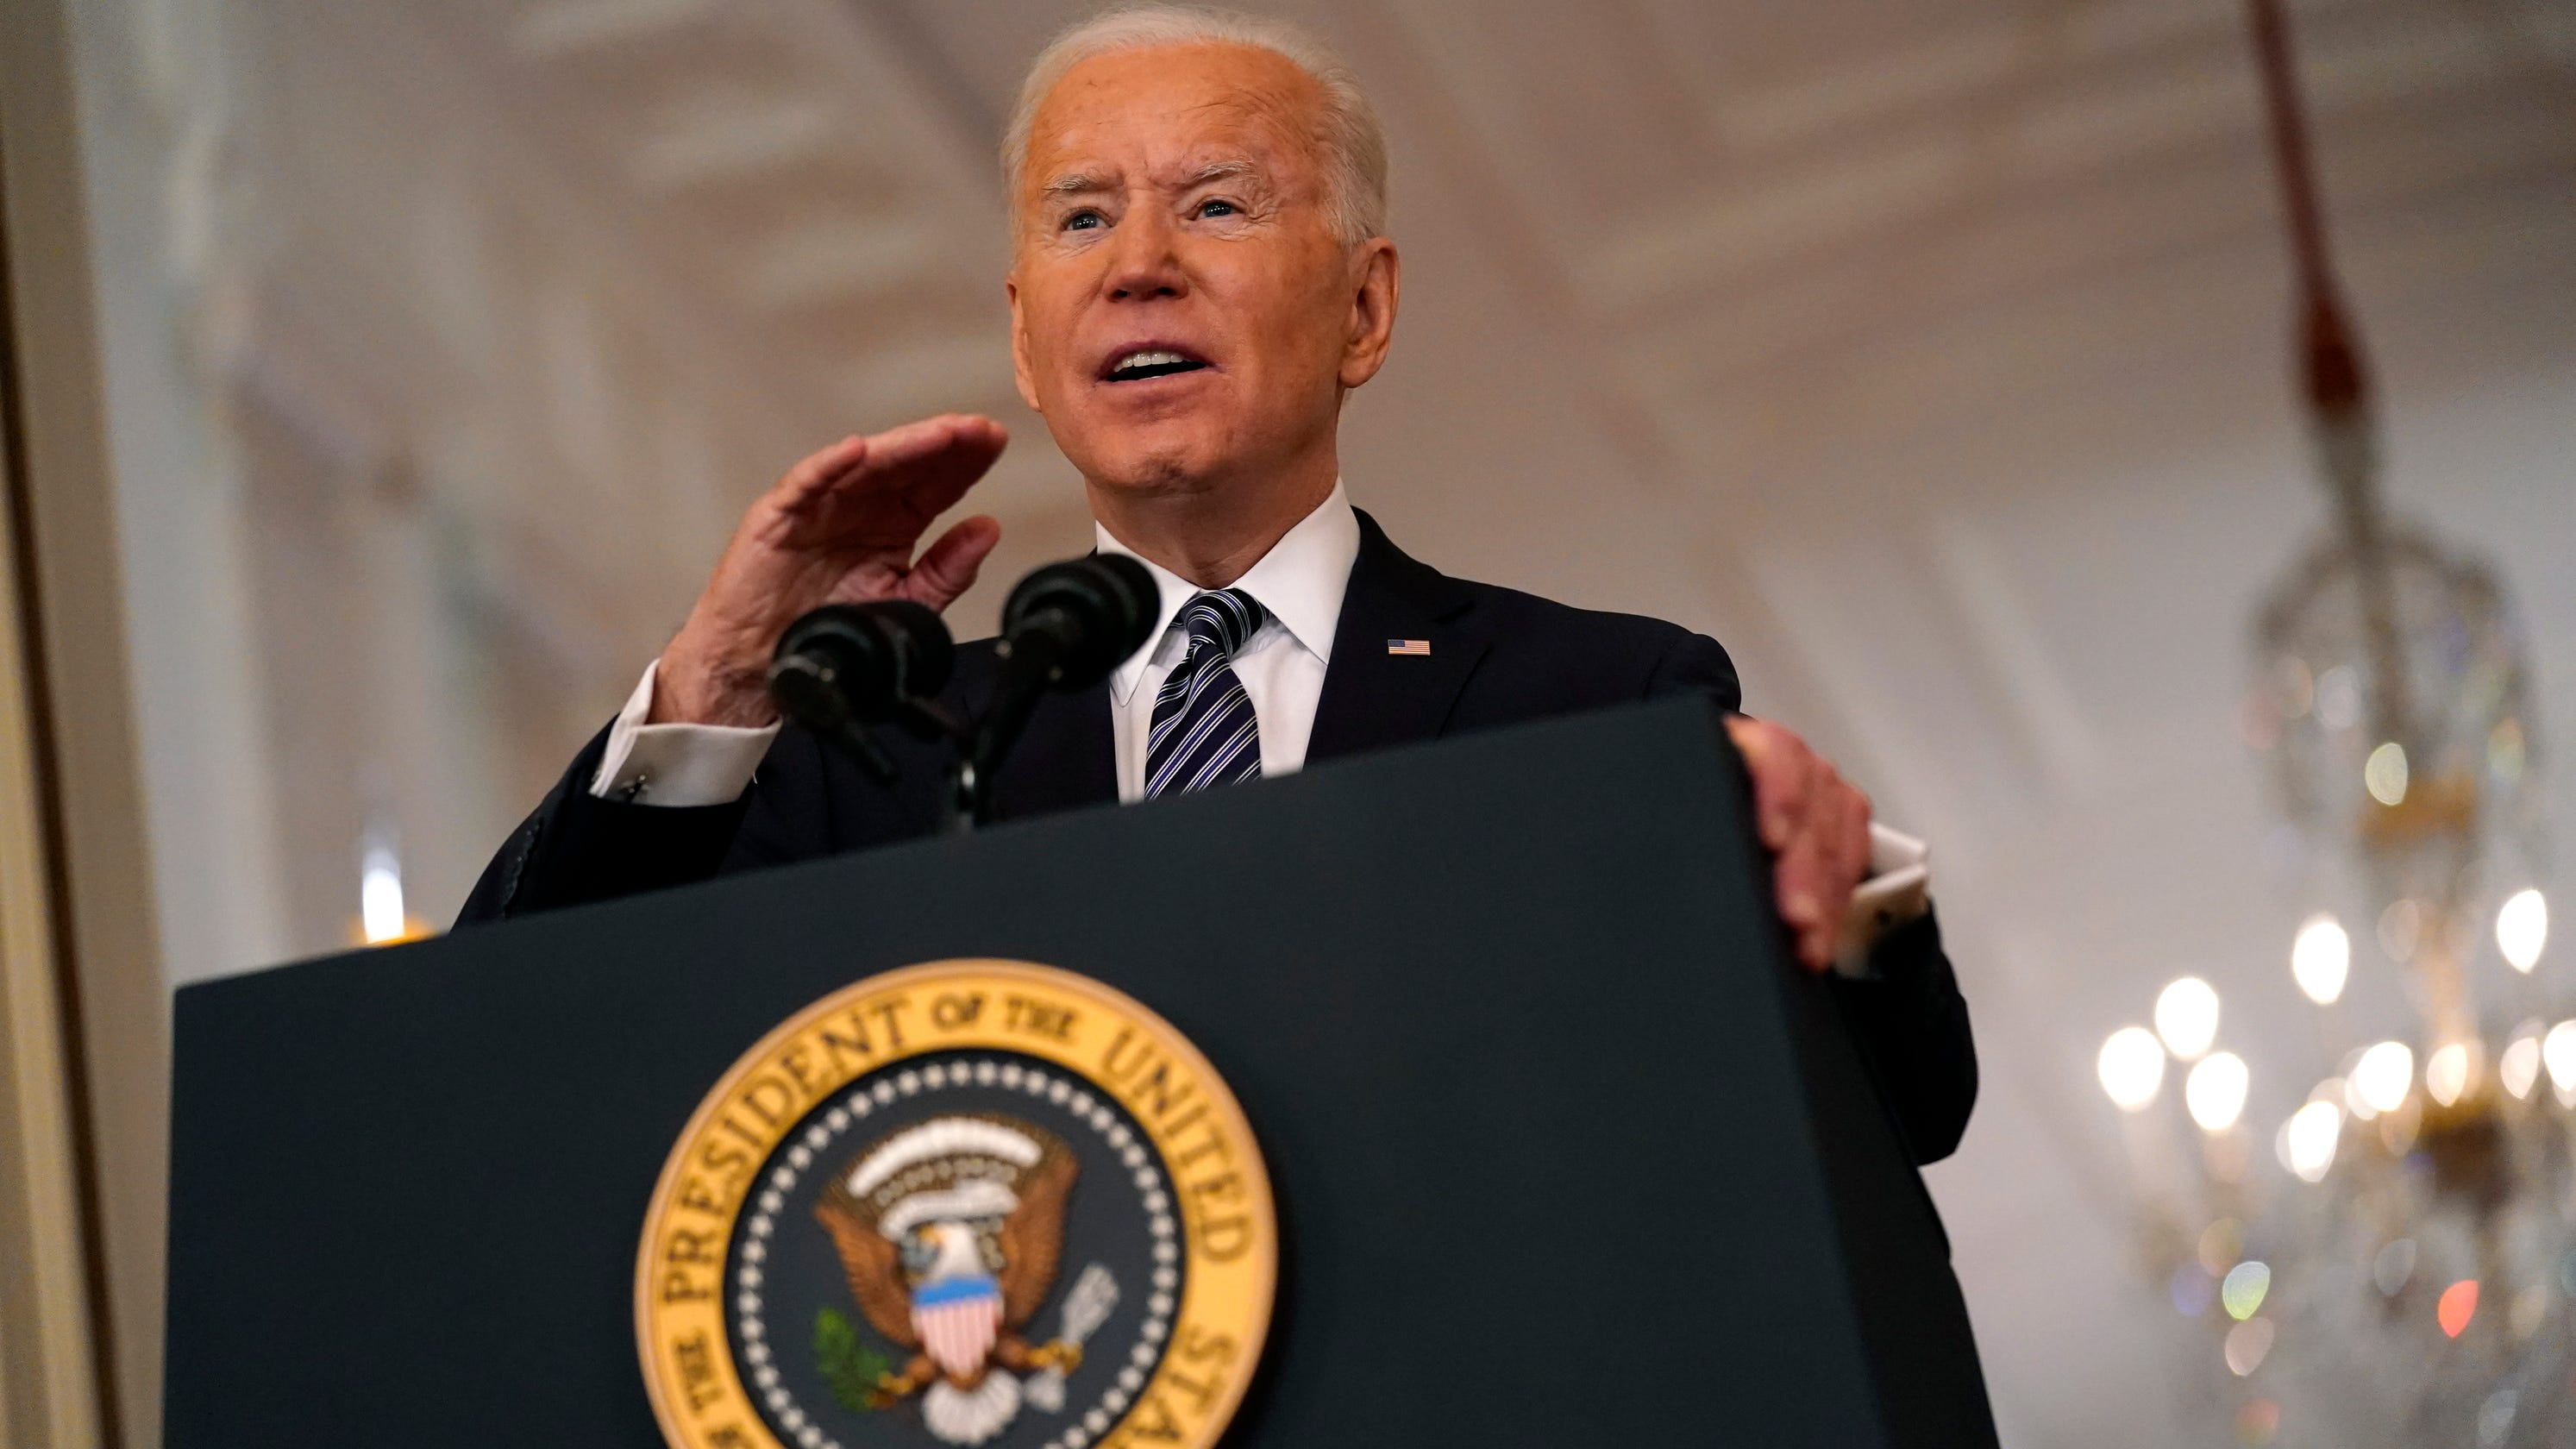 Gun control legislation or executive orders? Here's what President Biden is considering – USA TODAY